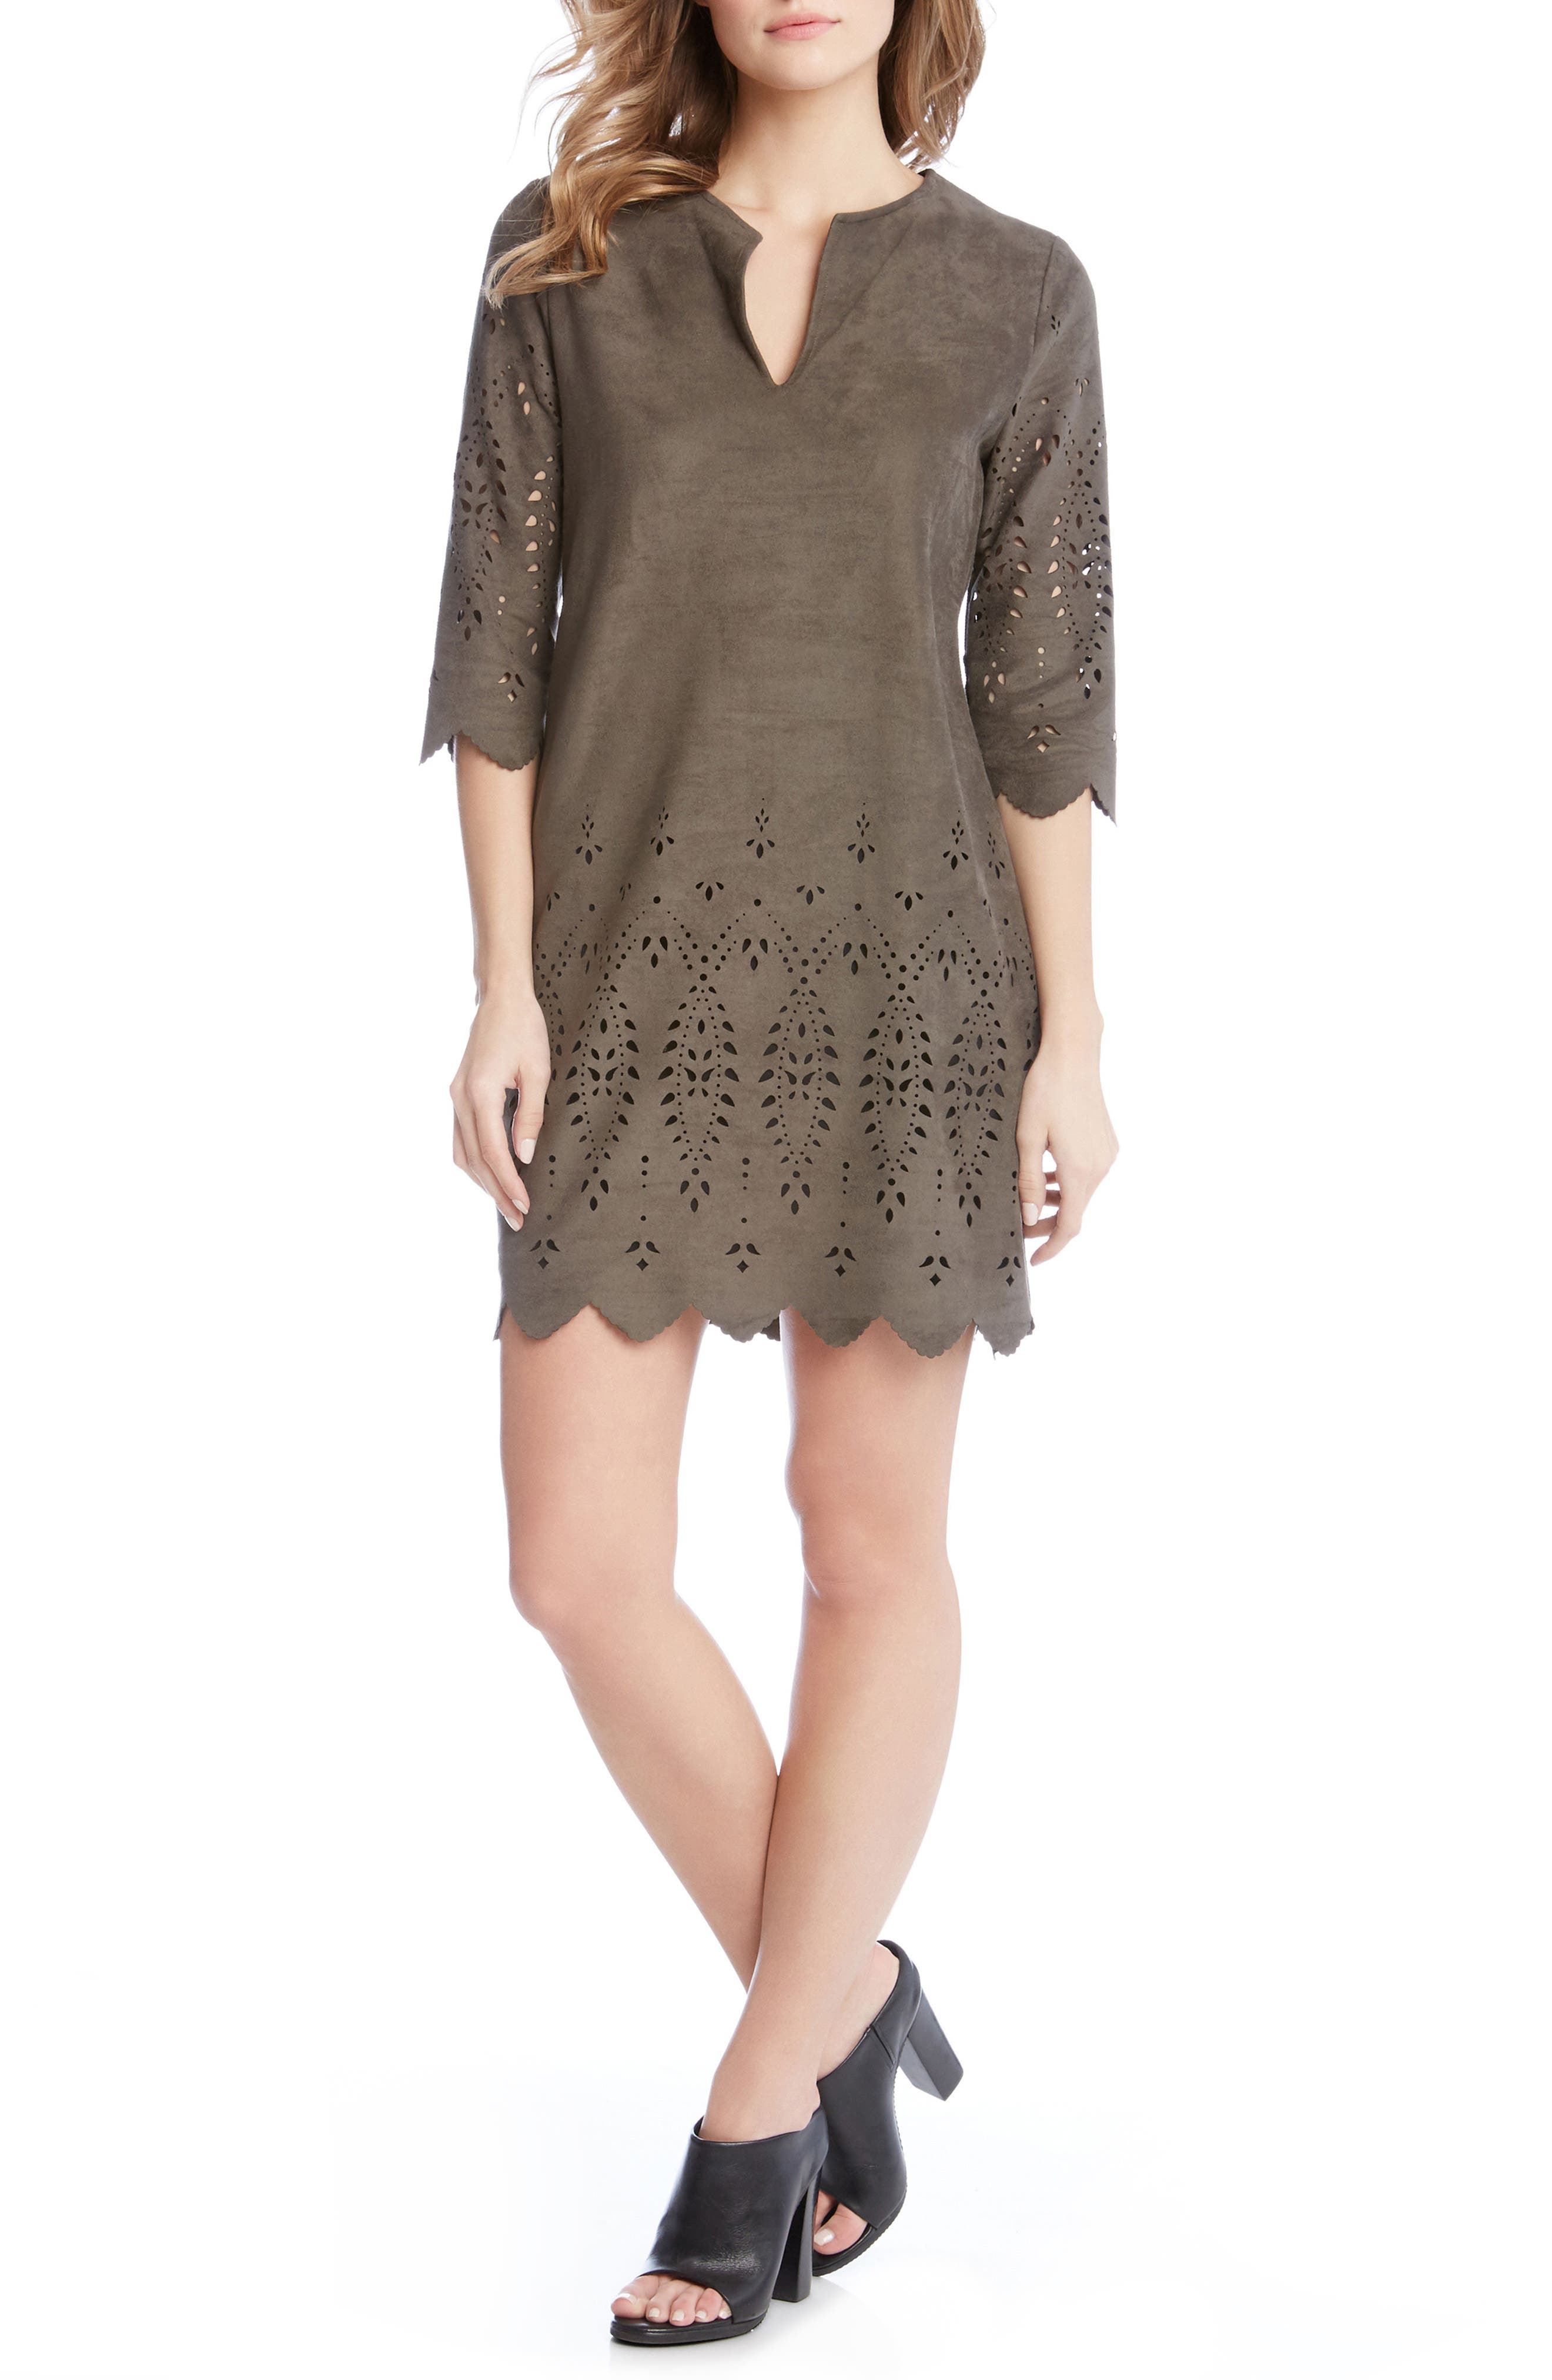 KAREN KANE Laser Cut Faux Suede Dress